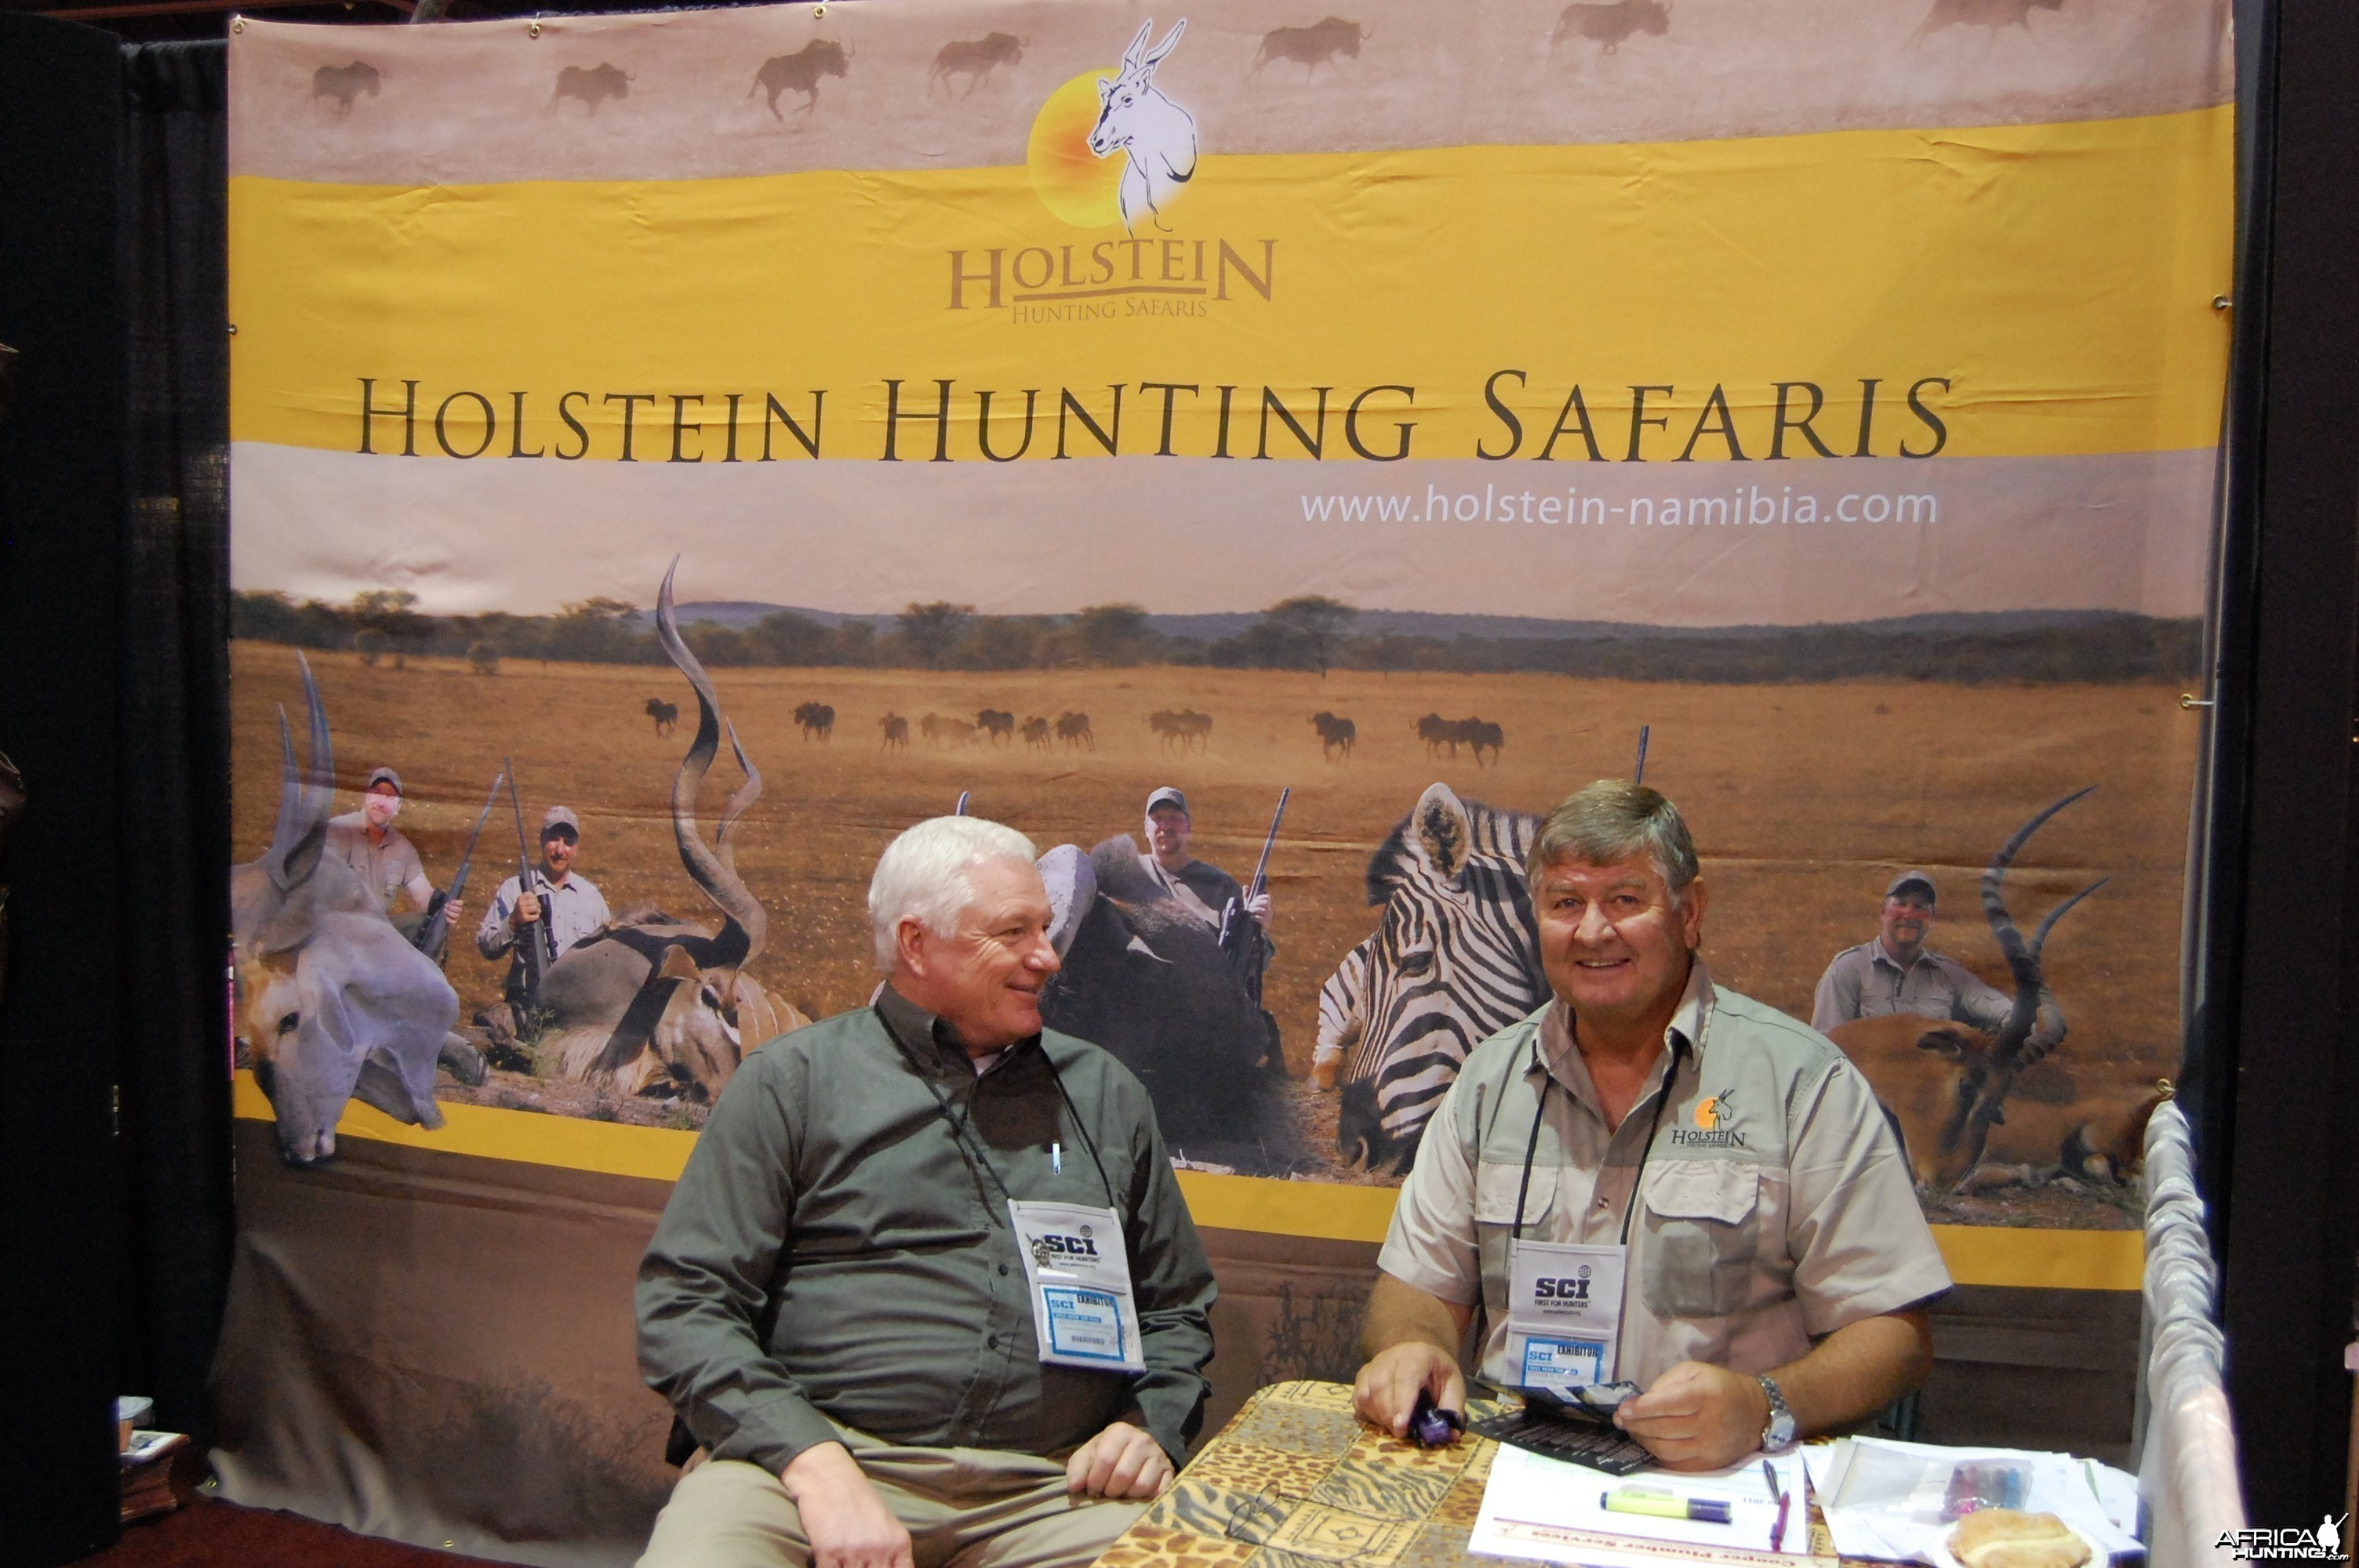 Holstein Hunting Safaris